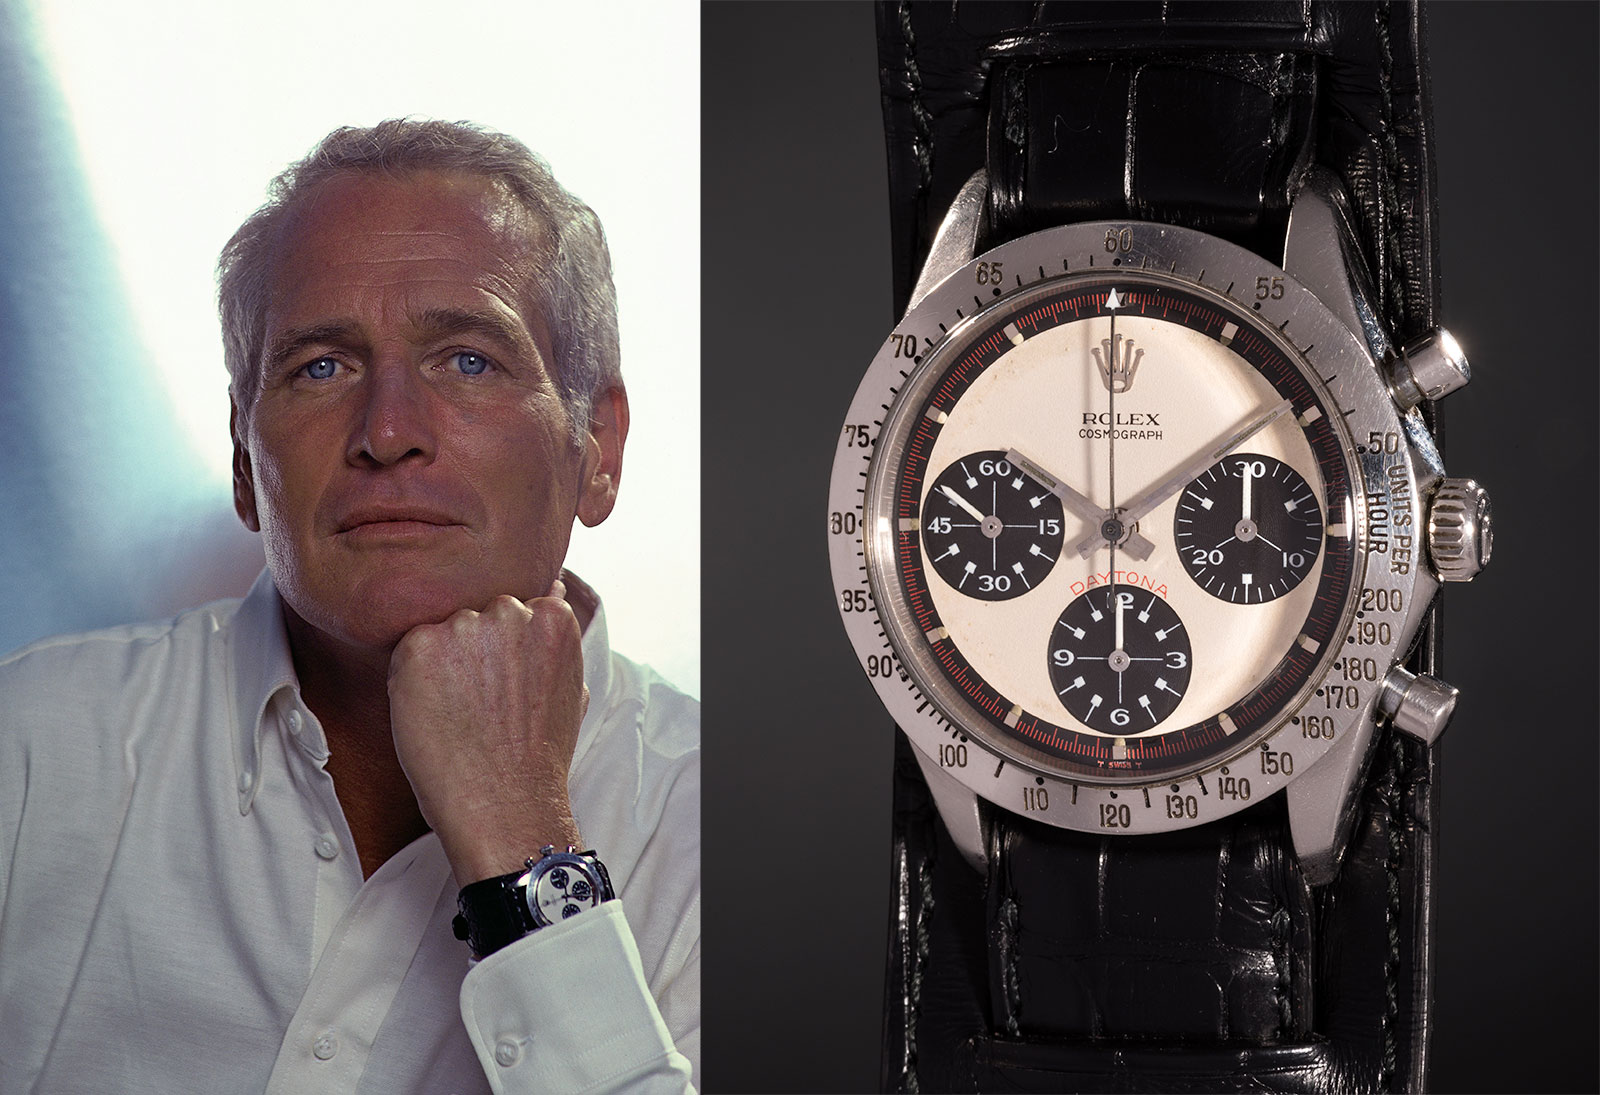 Paul Newmans Personal Paul Newman Daytona Has Been Found advise